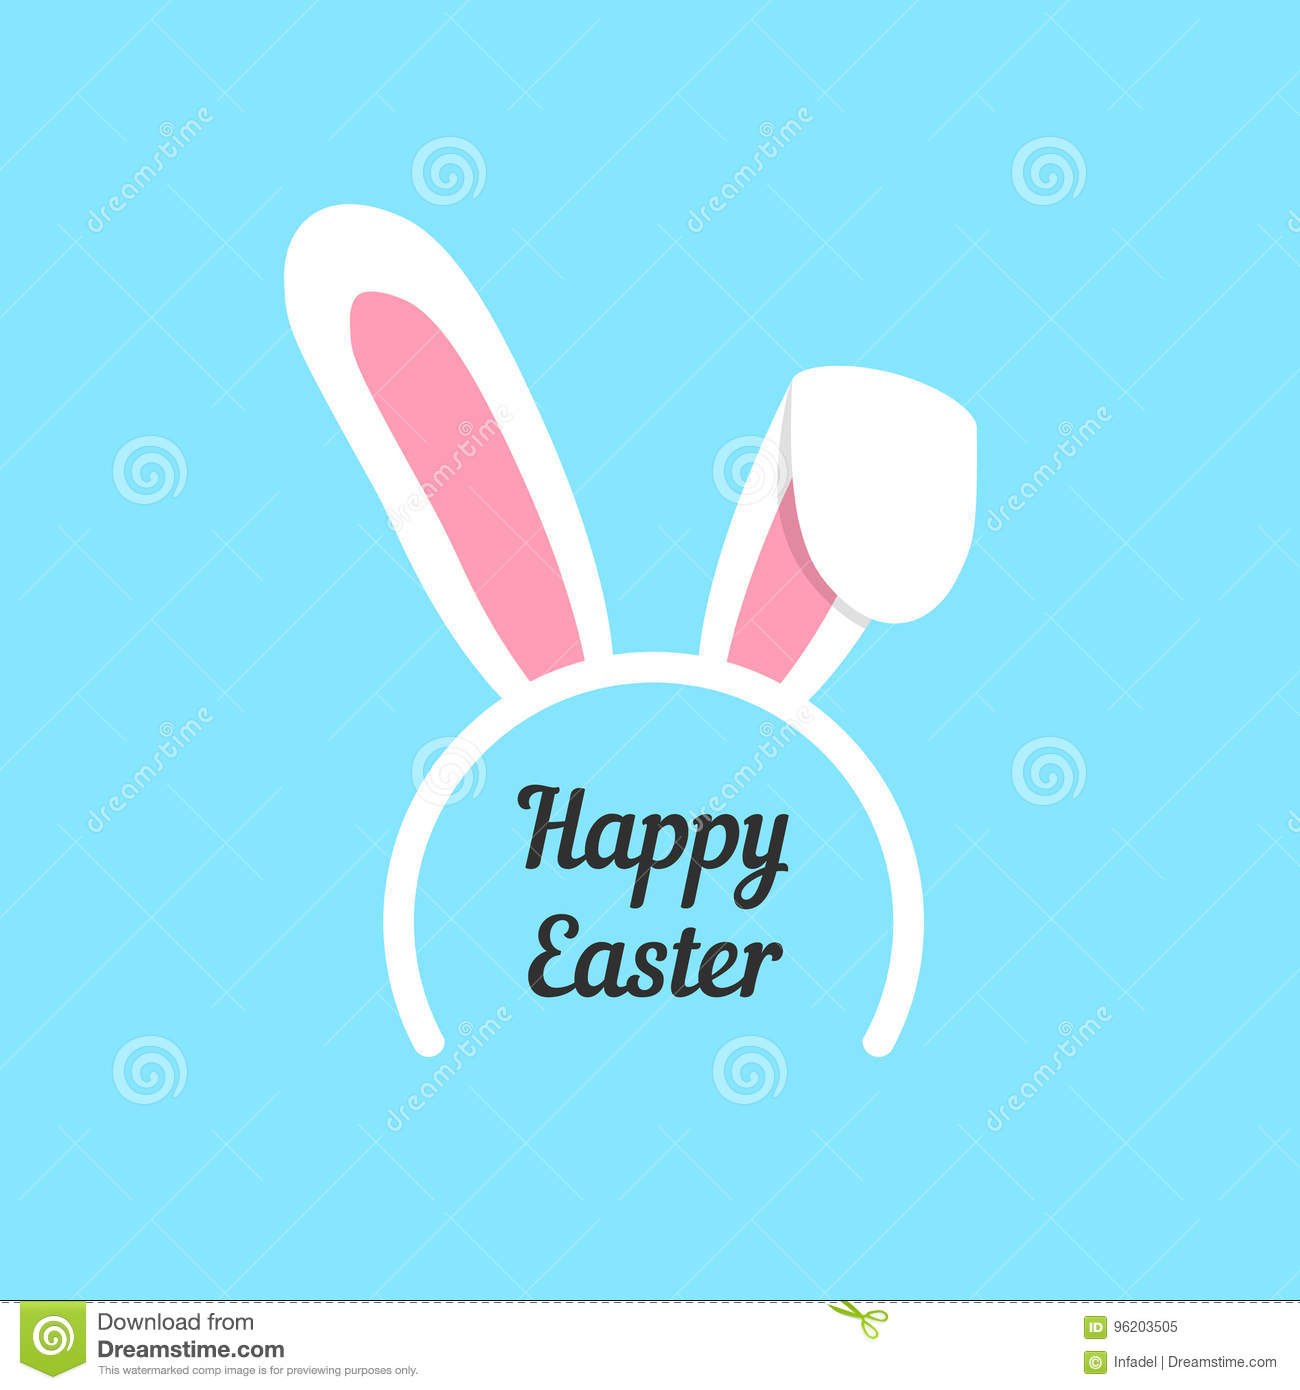 Happy Easter With Rabbit Ears Mask Stock Vector Illustration Of